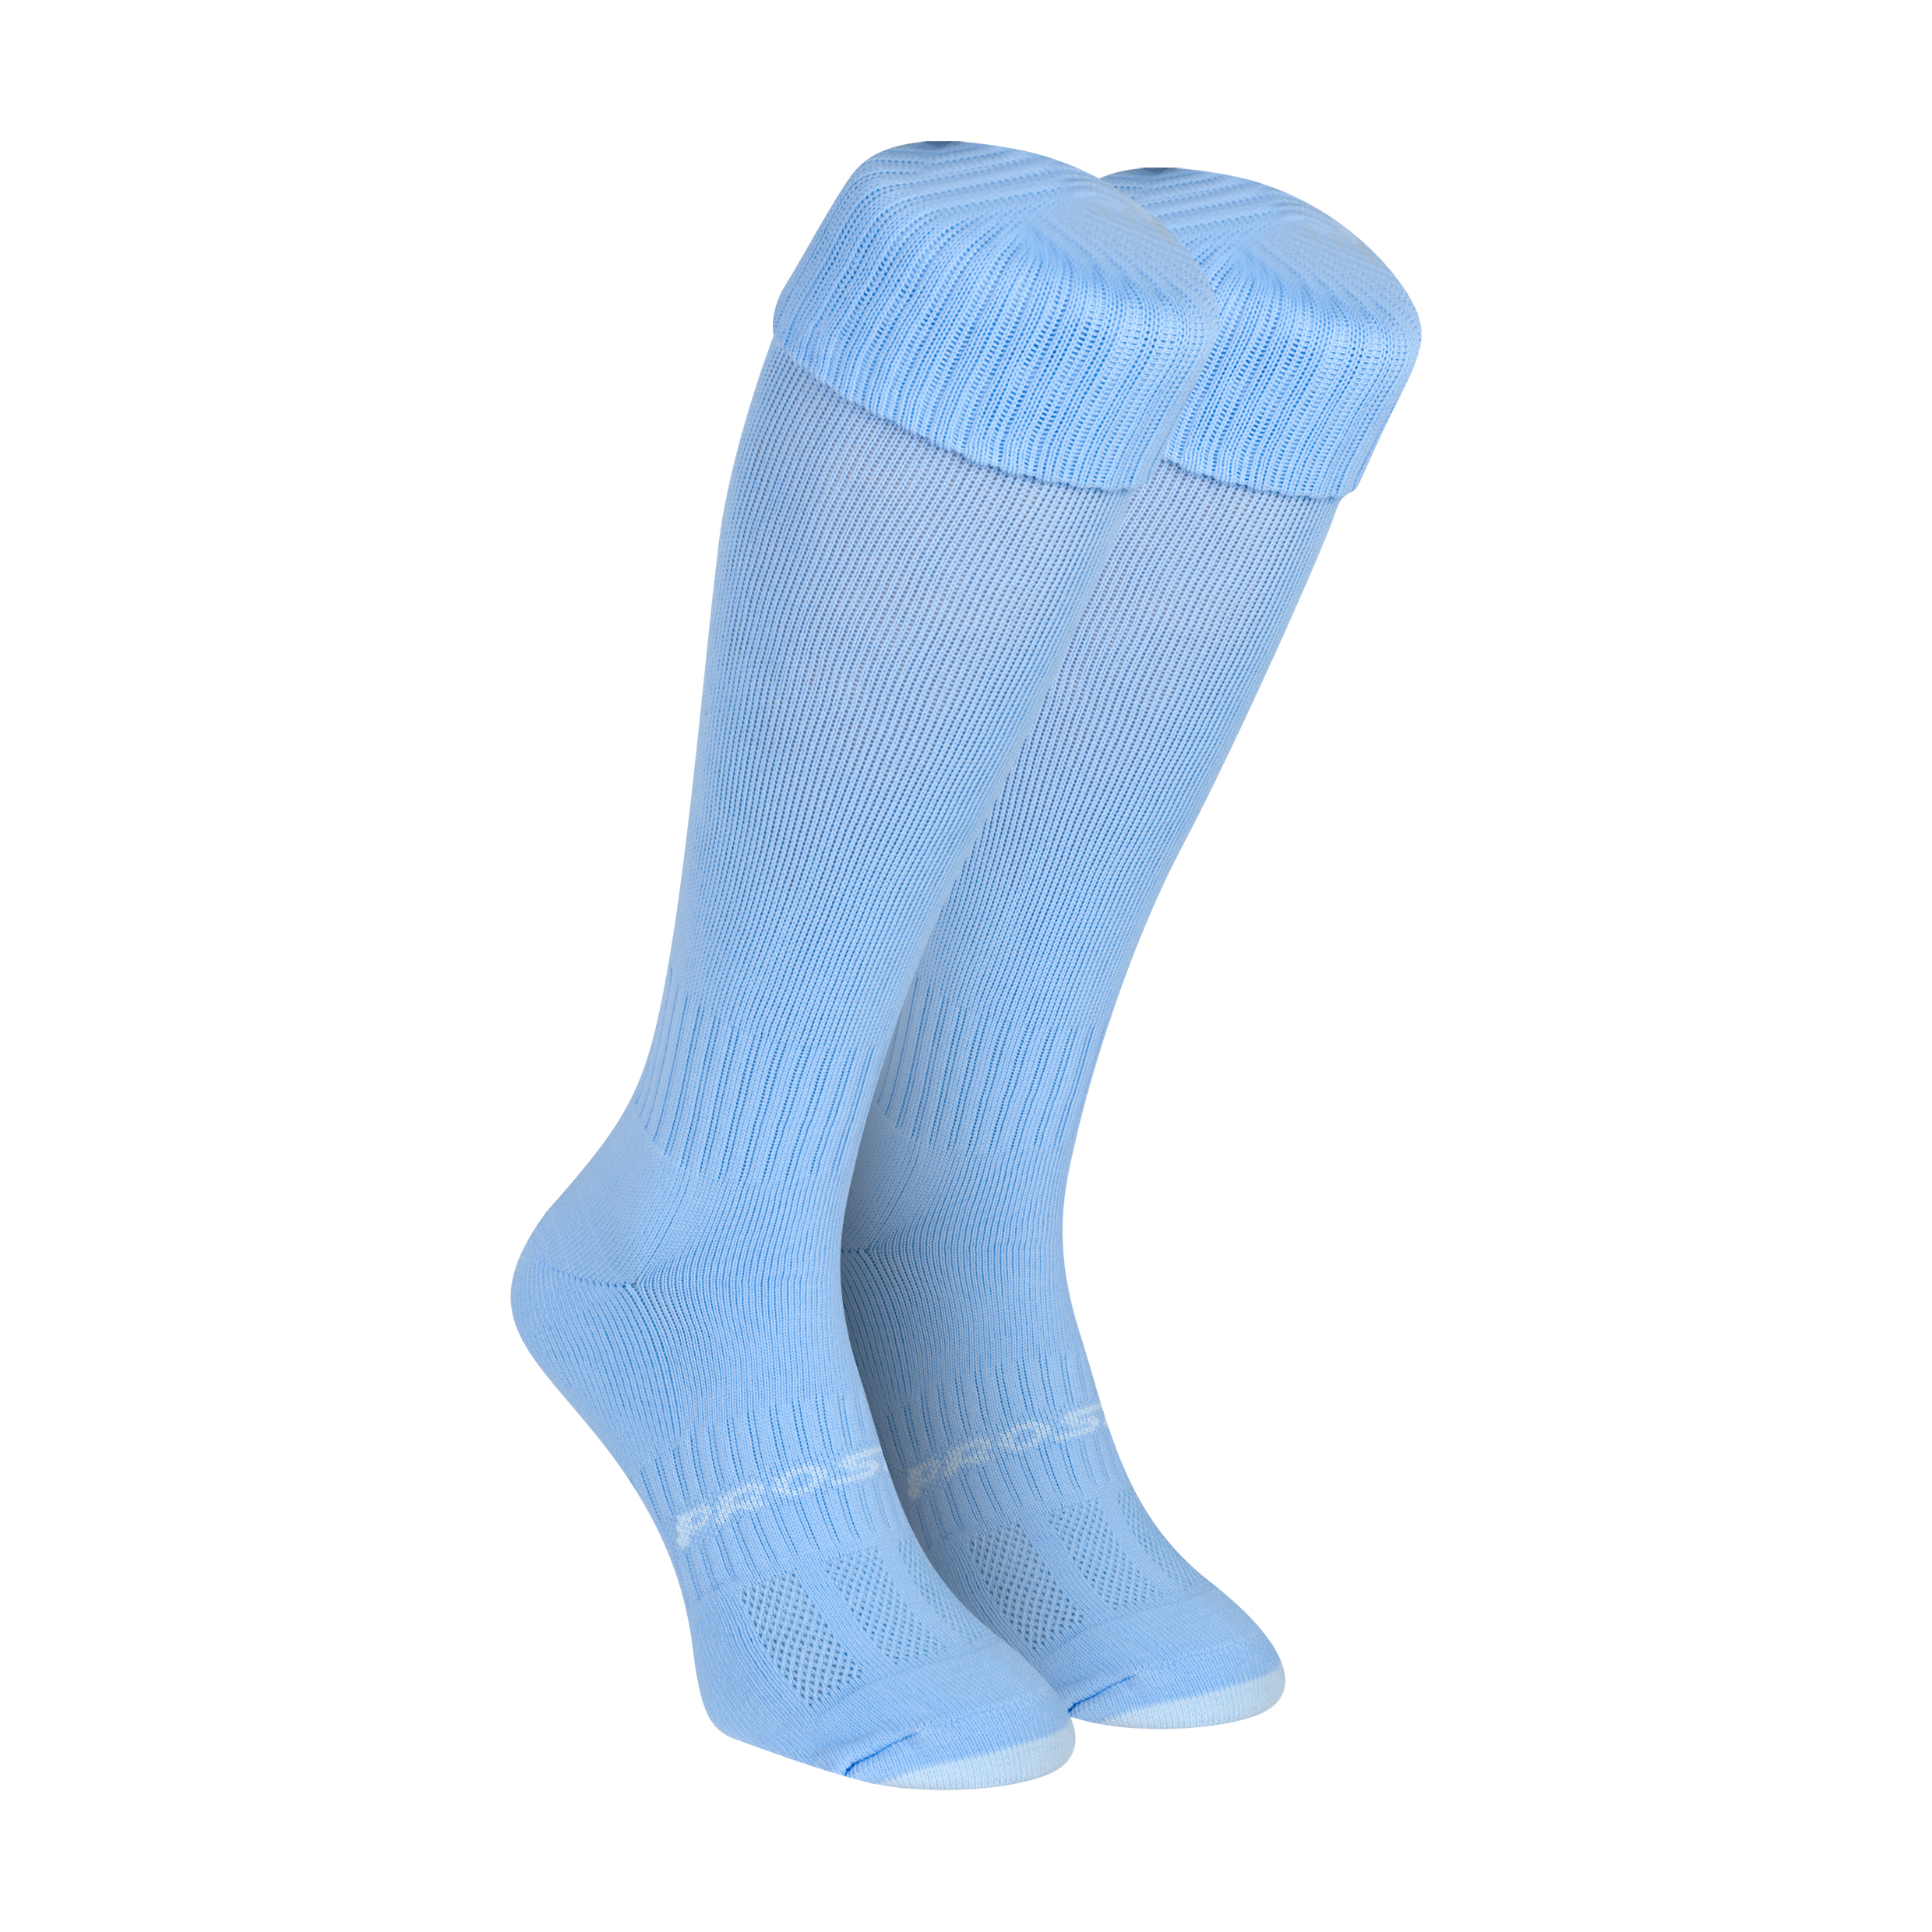 Mitre Mercury Football Socks - Sky Blue - 7-11